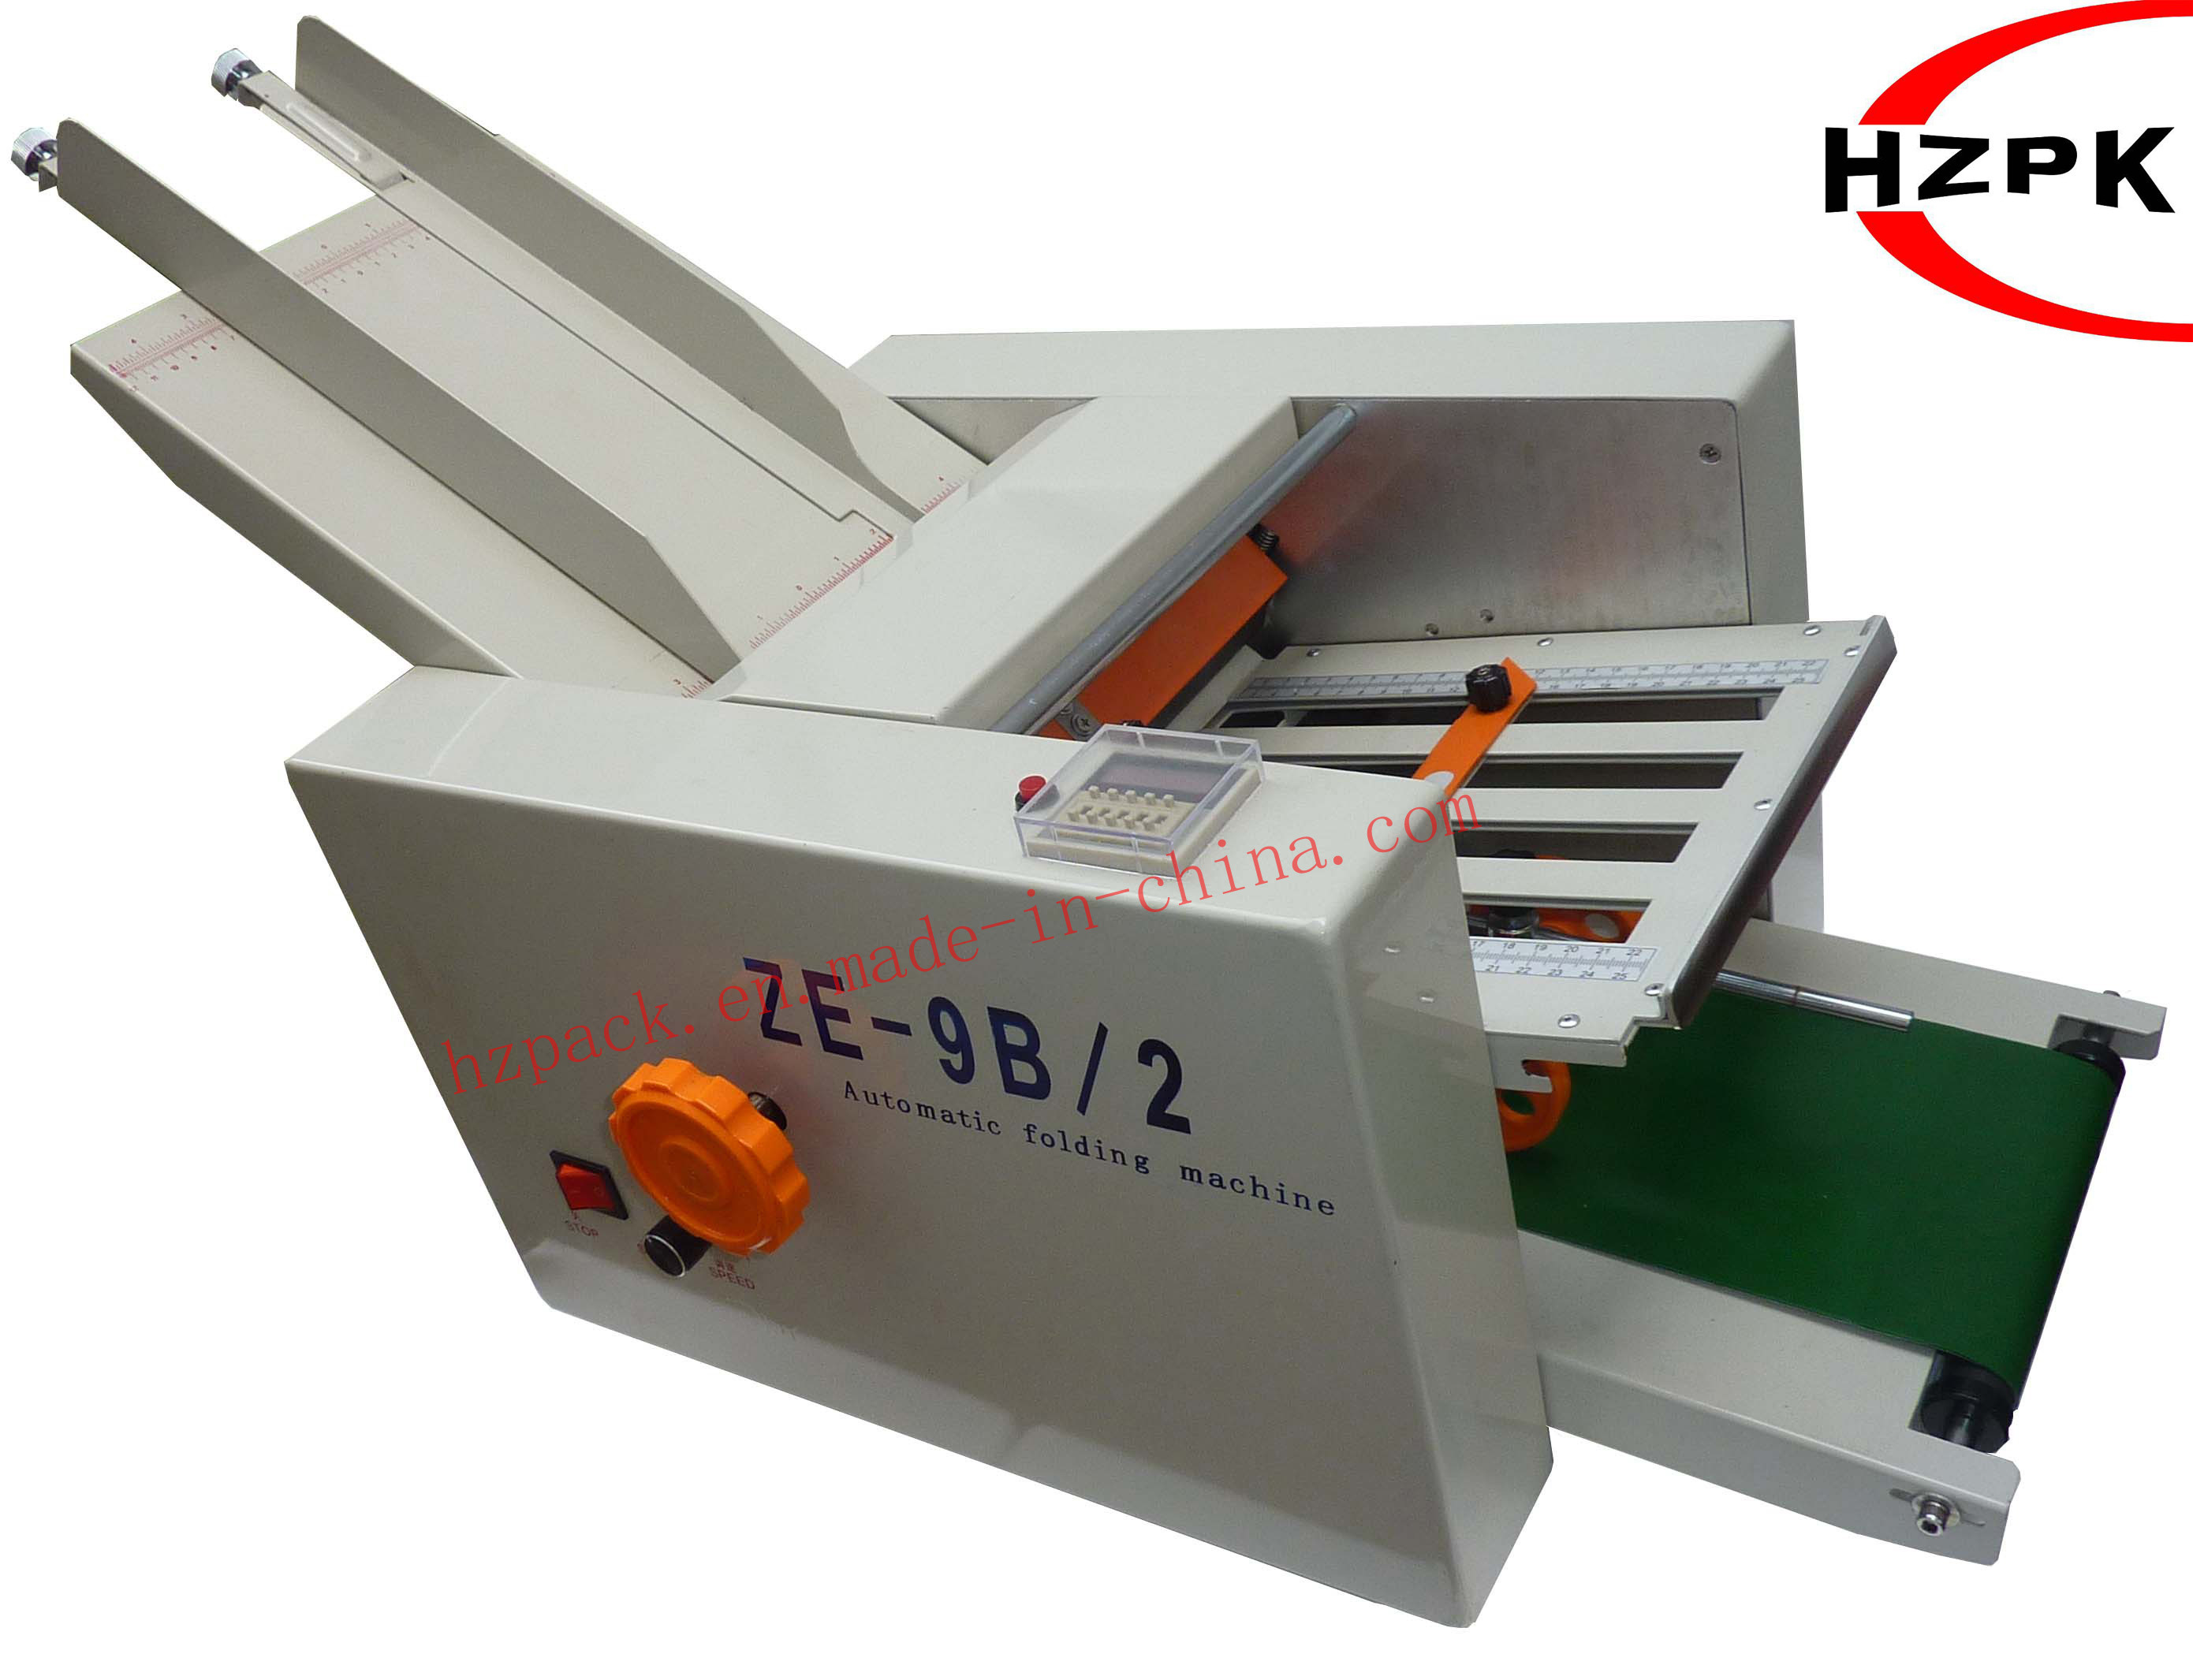 Automatic Paper Folding Machine (ZE-9B/2)